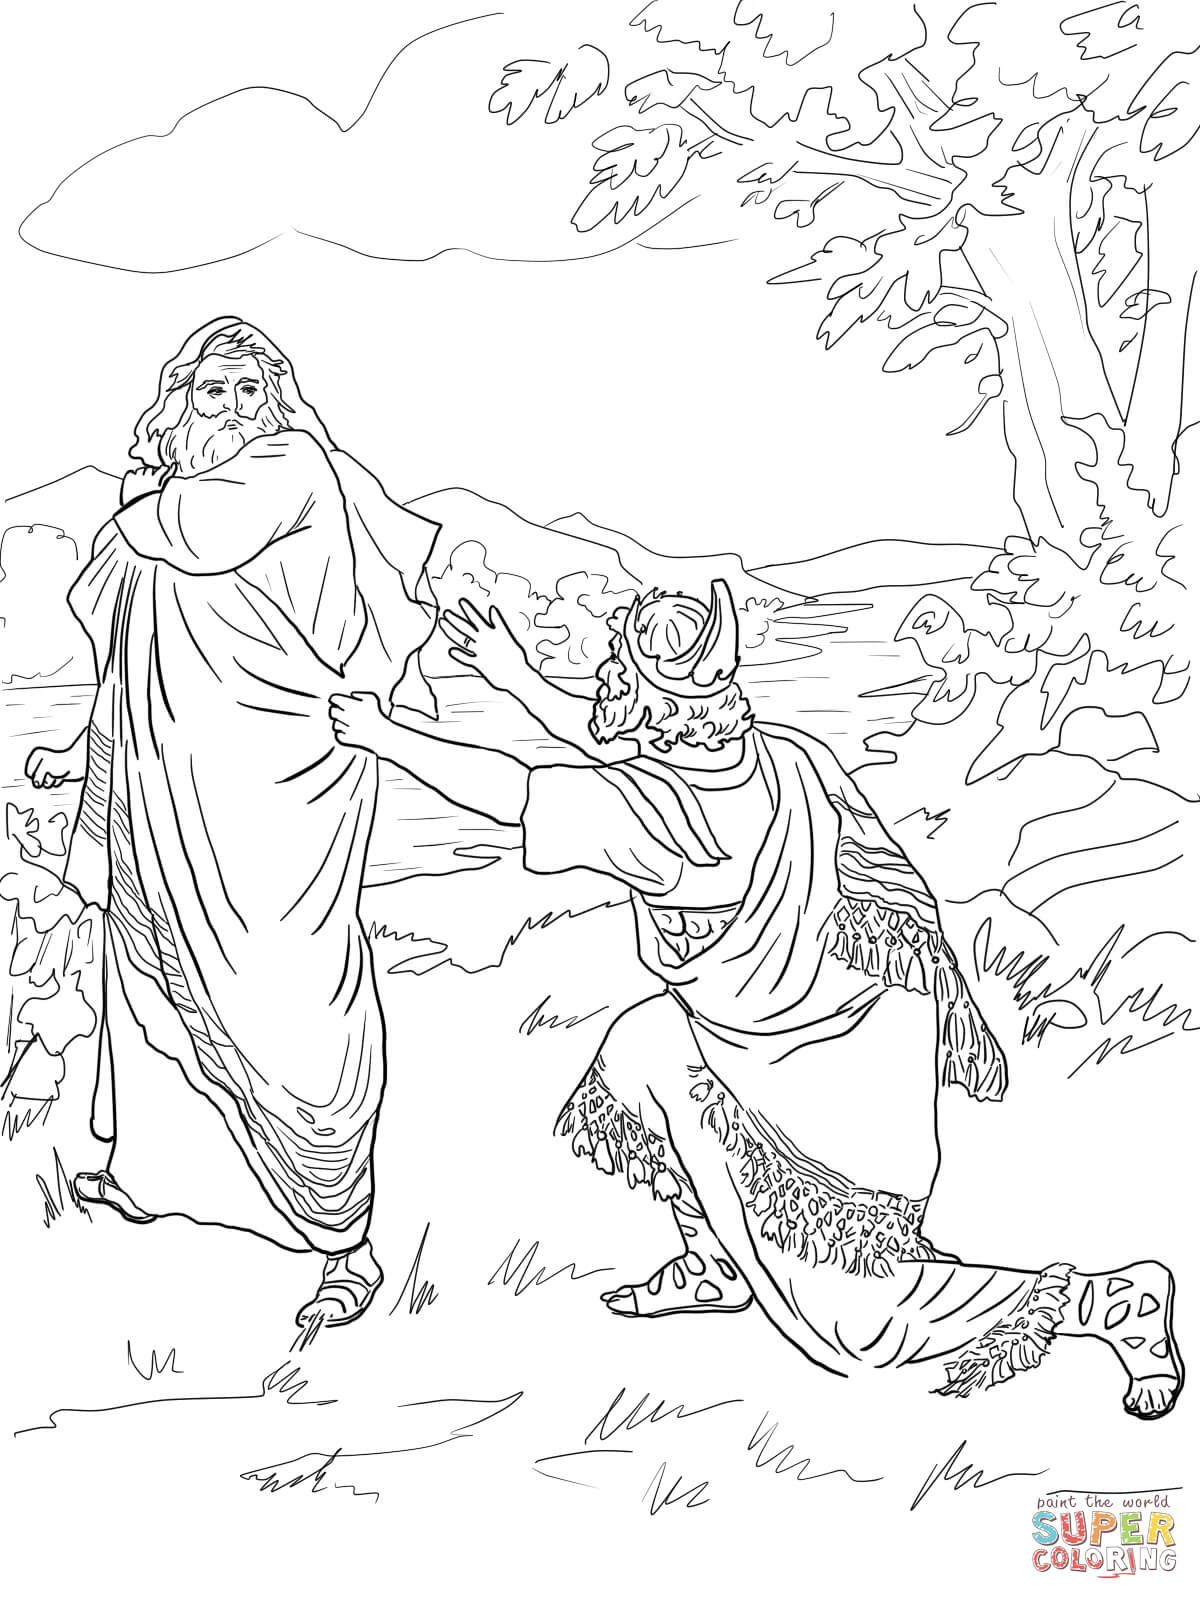 Wisdom coloring page at getdrawings com free for personal use